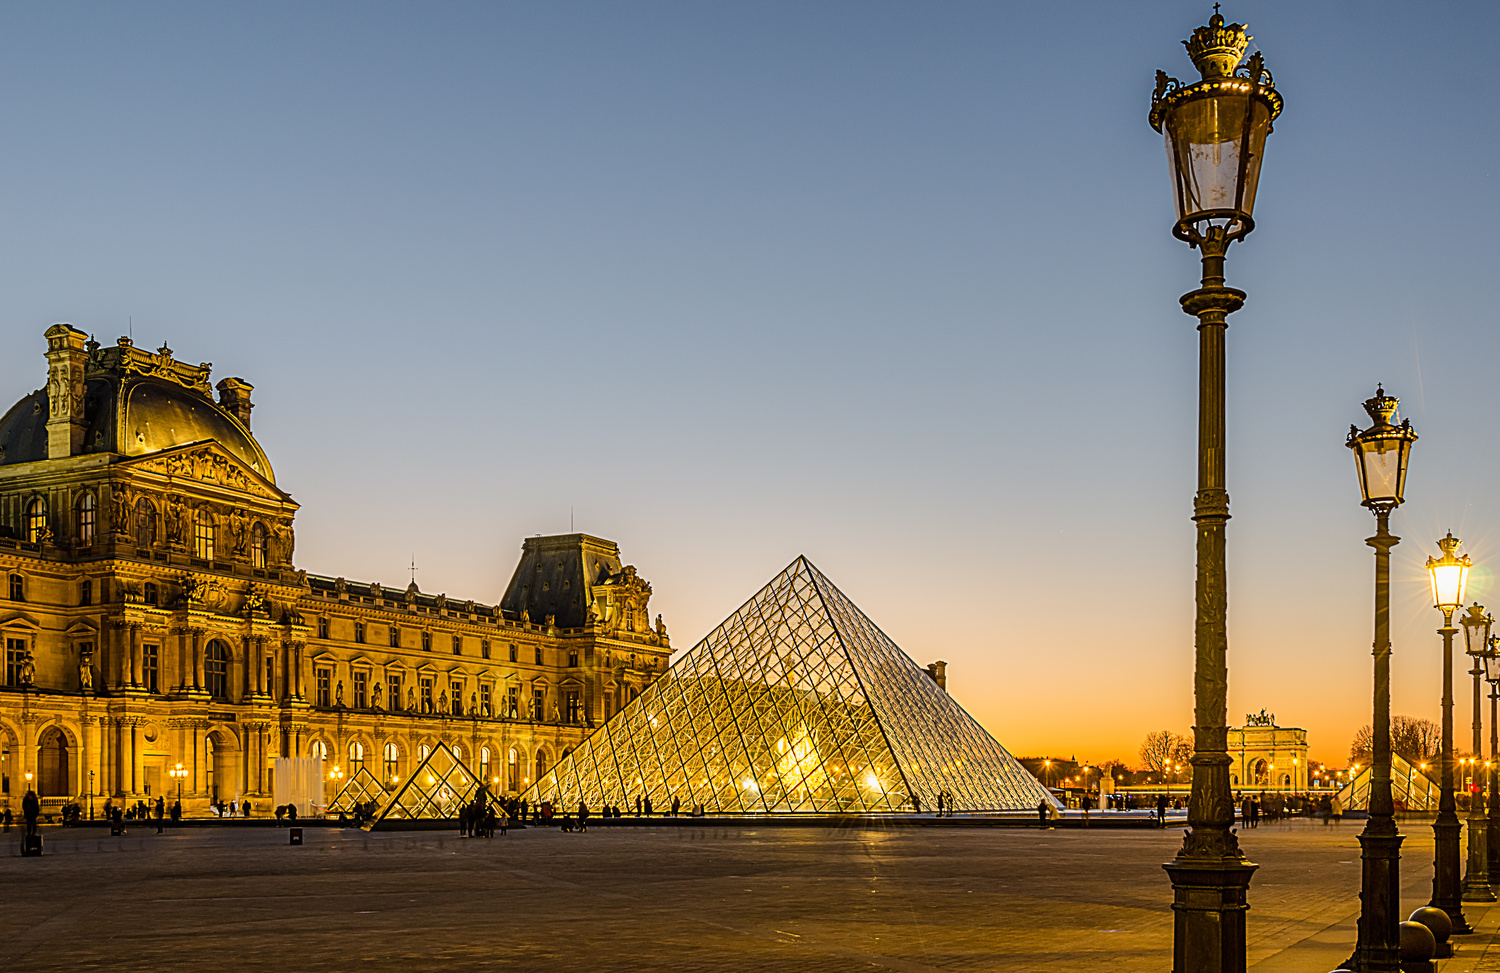 Paris Louvre by Vito Cagnazzo